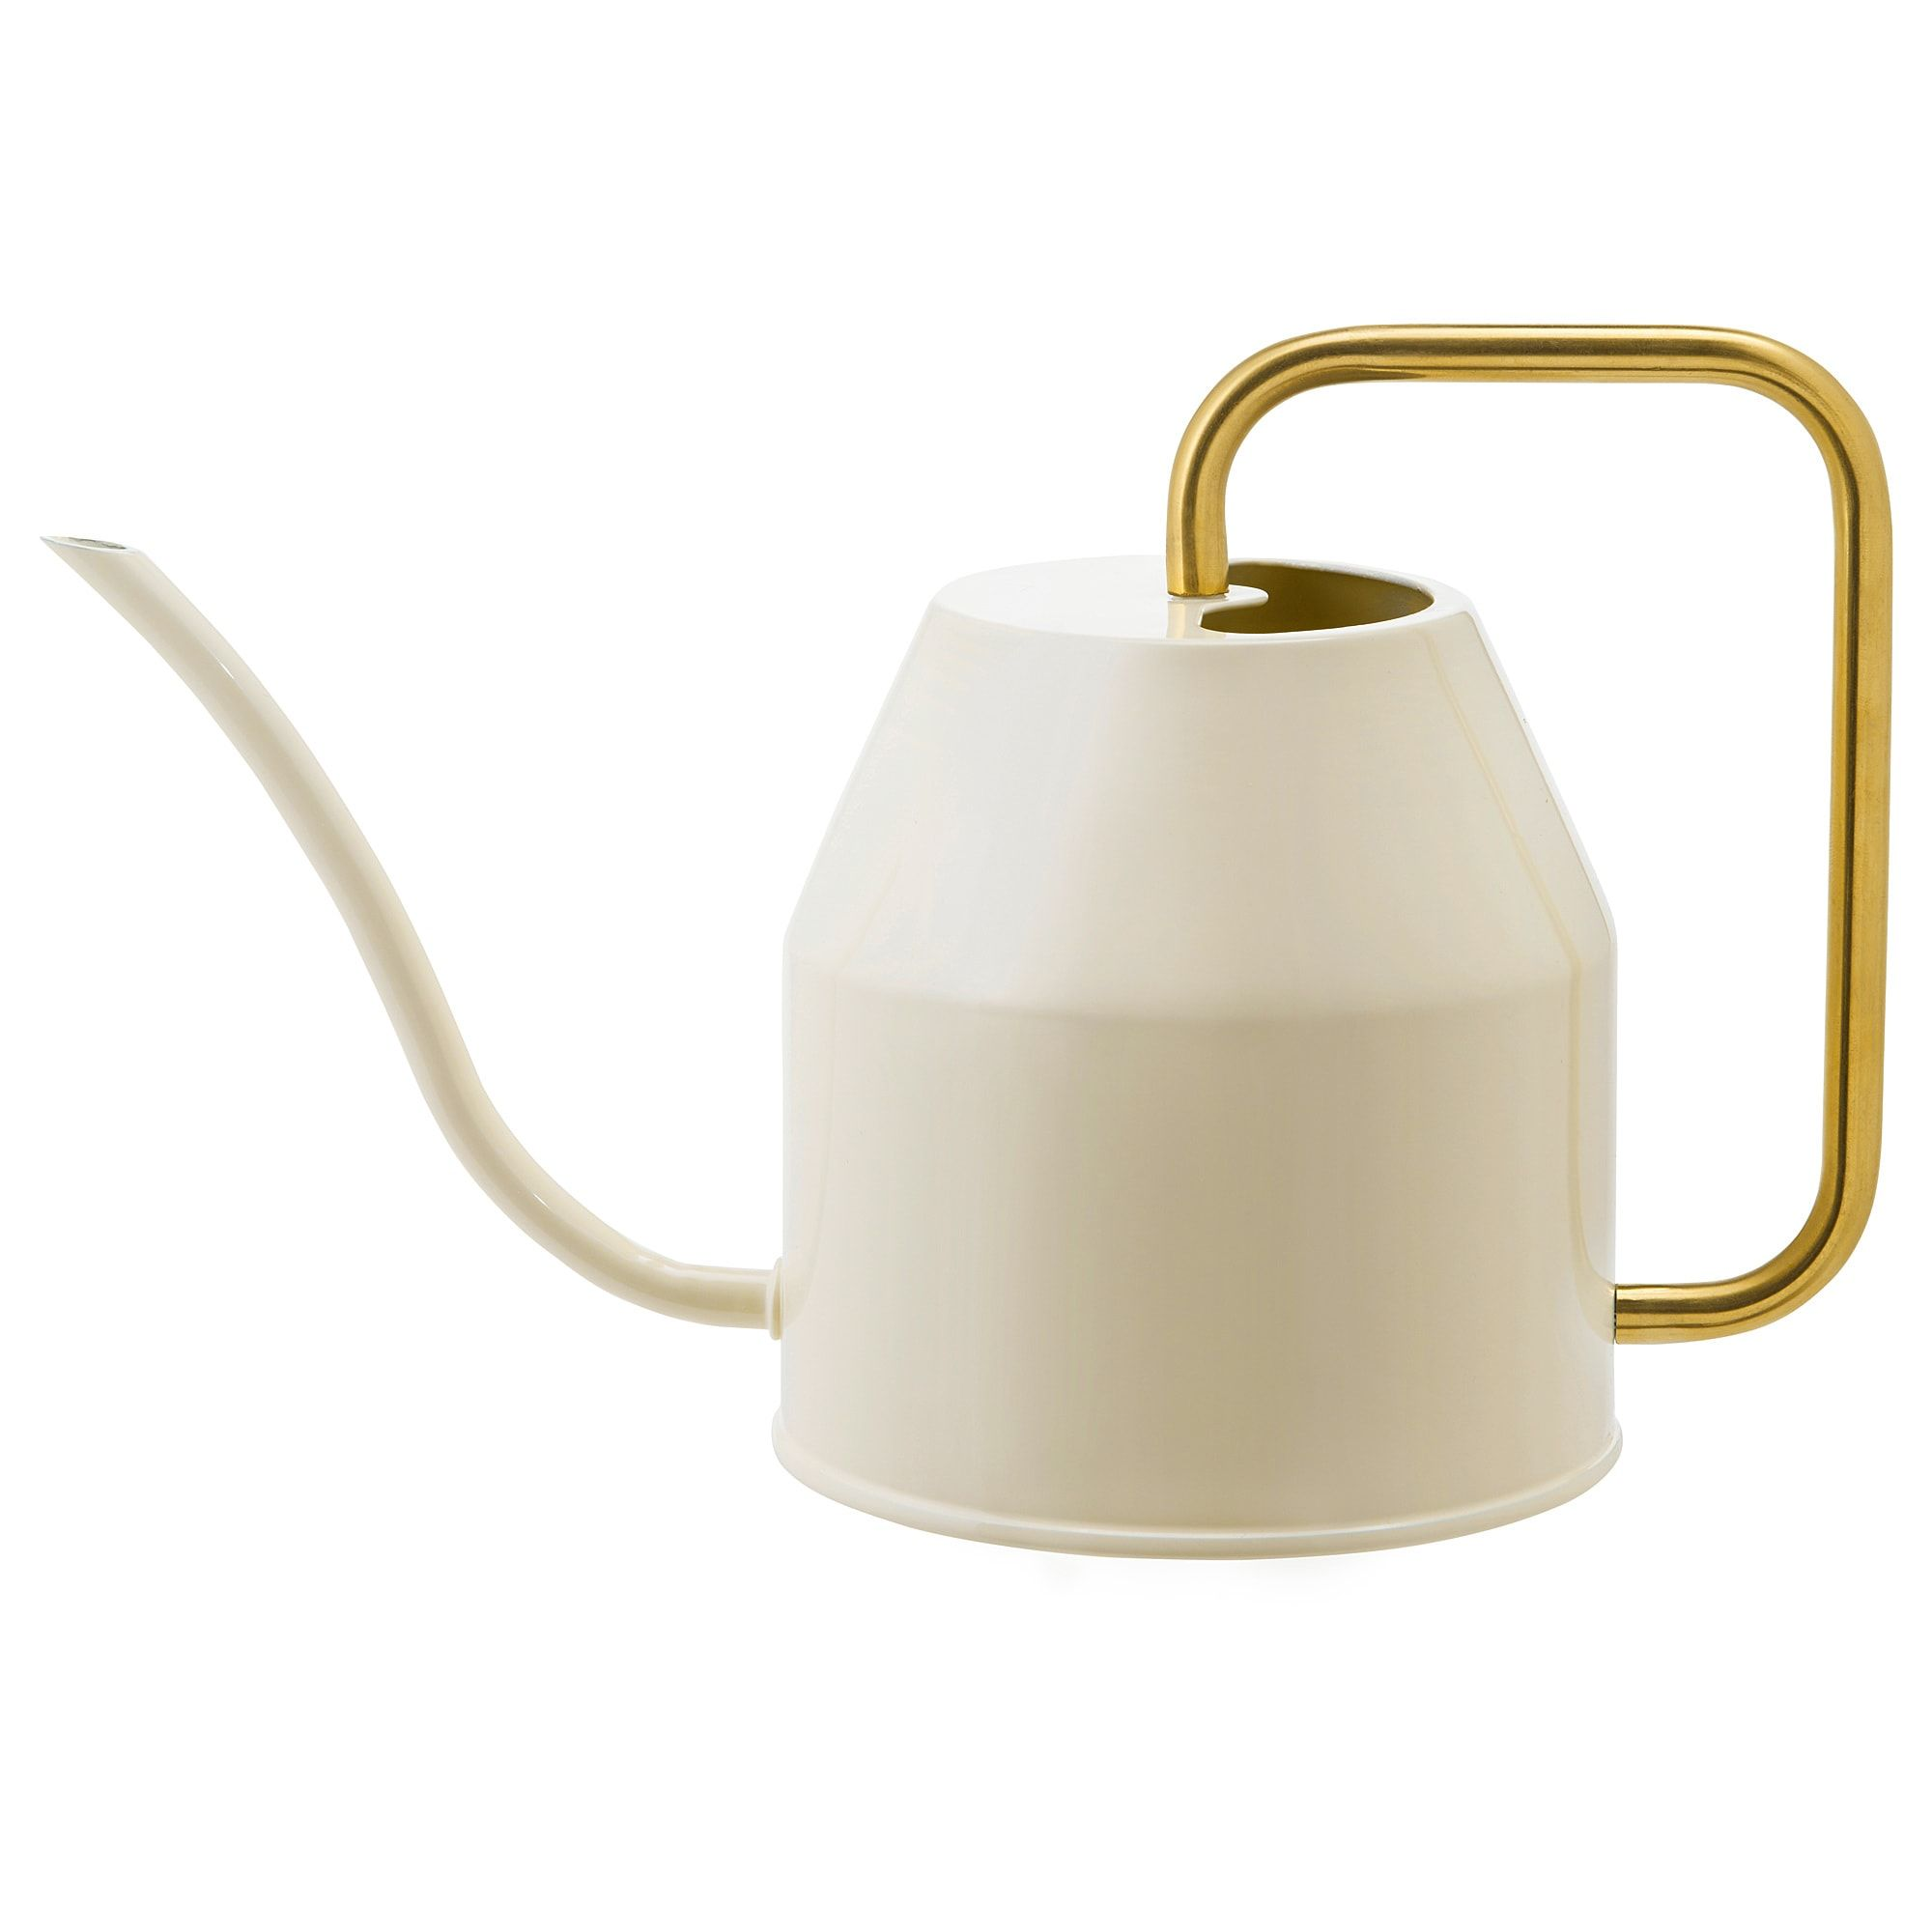 Ikea Vattenkrasse Watering Can Ivory Gold Colour Bamboo In